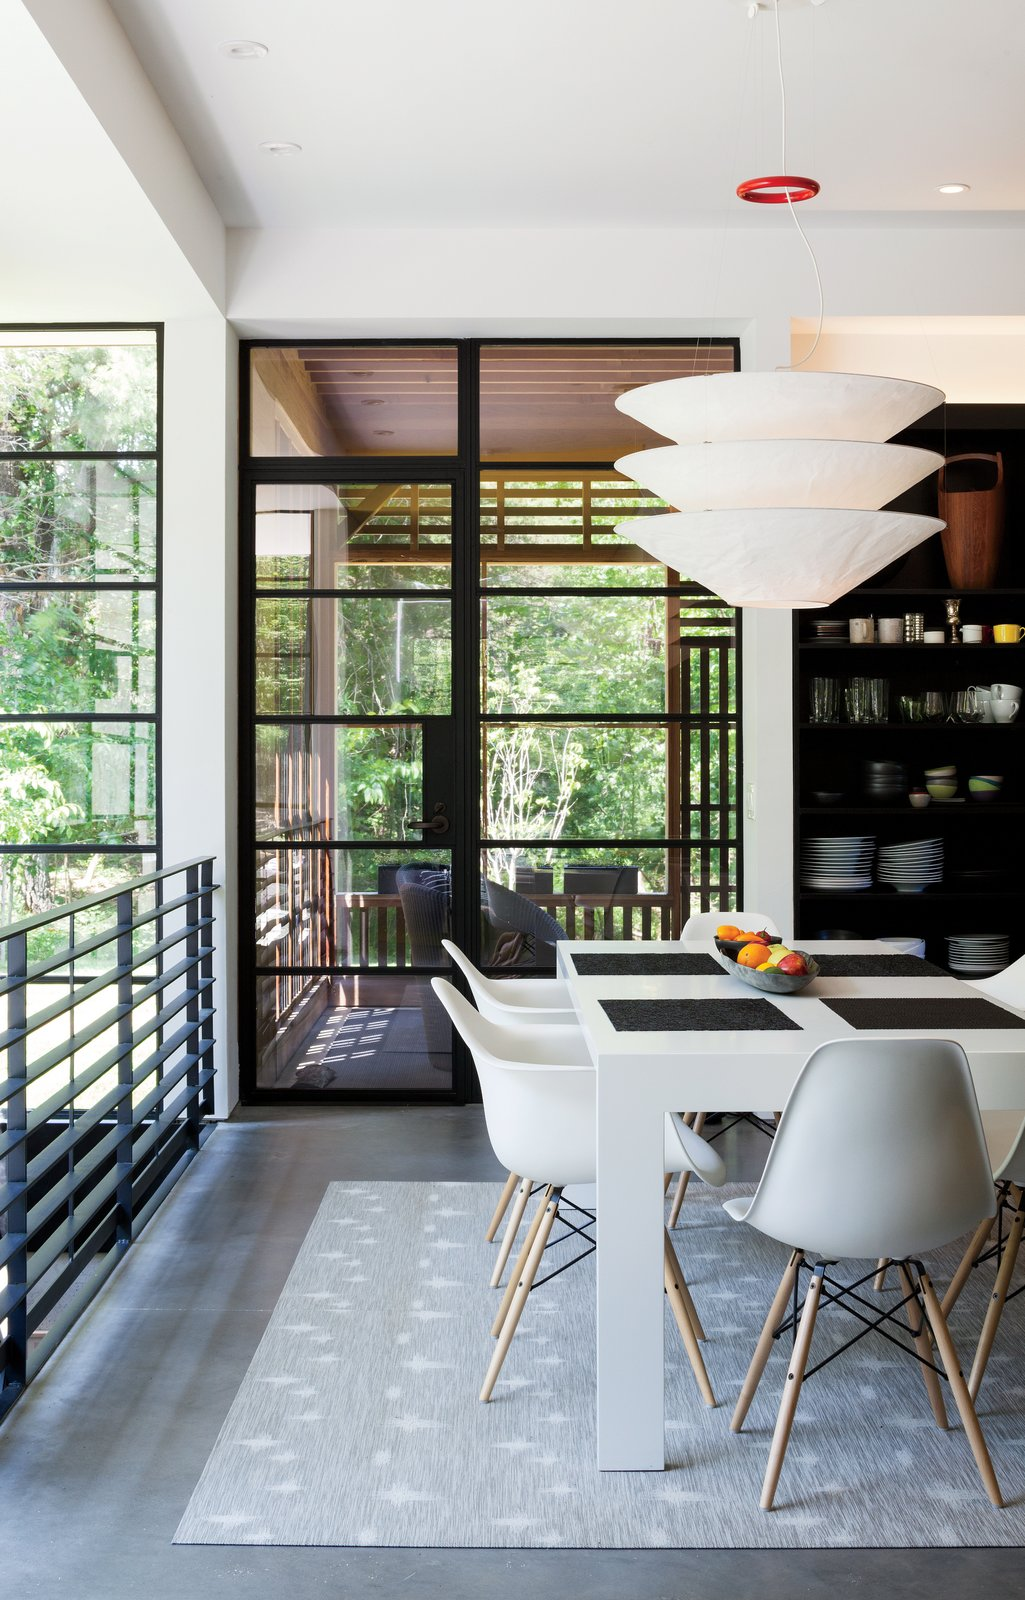 In the dining area are a Gamma table by Cappellini, Eames molded plastic chairs, and a Flotation pendant by Ingo Maurer.